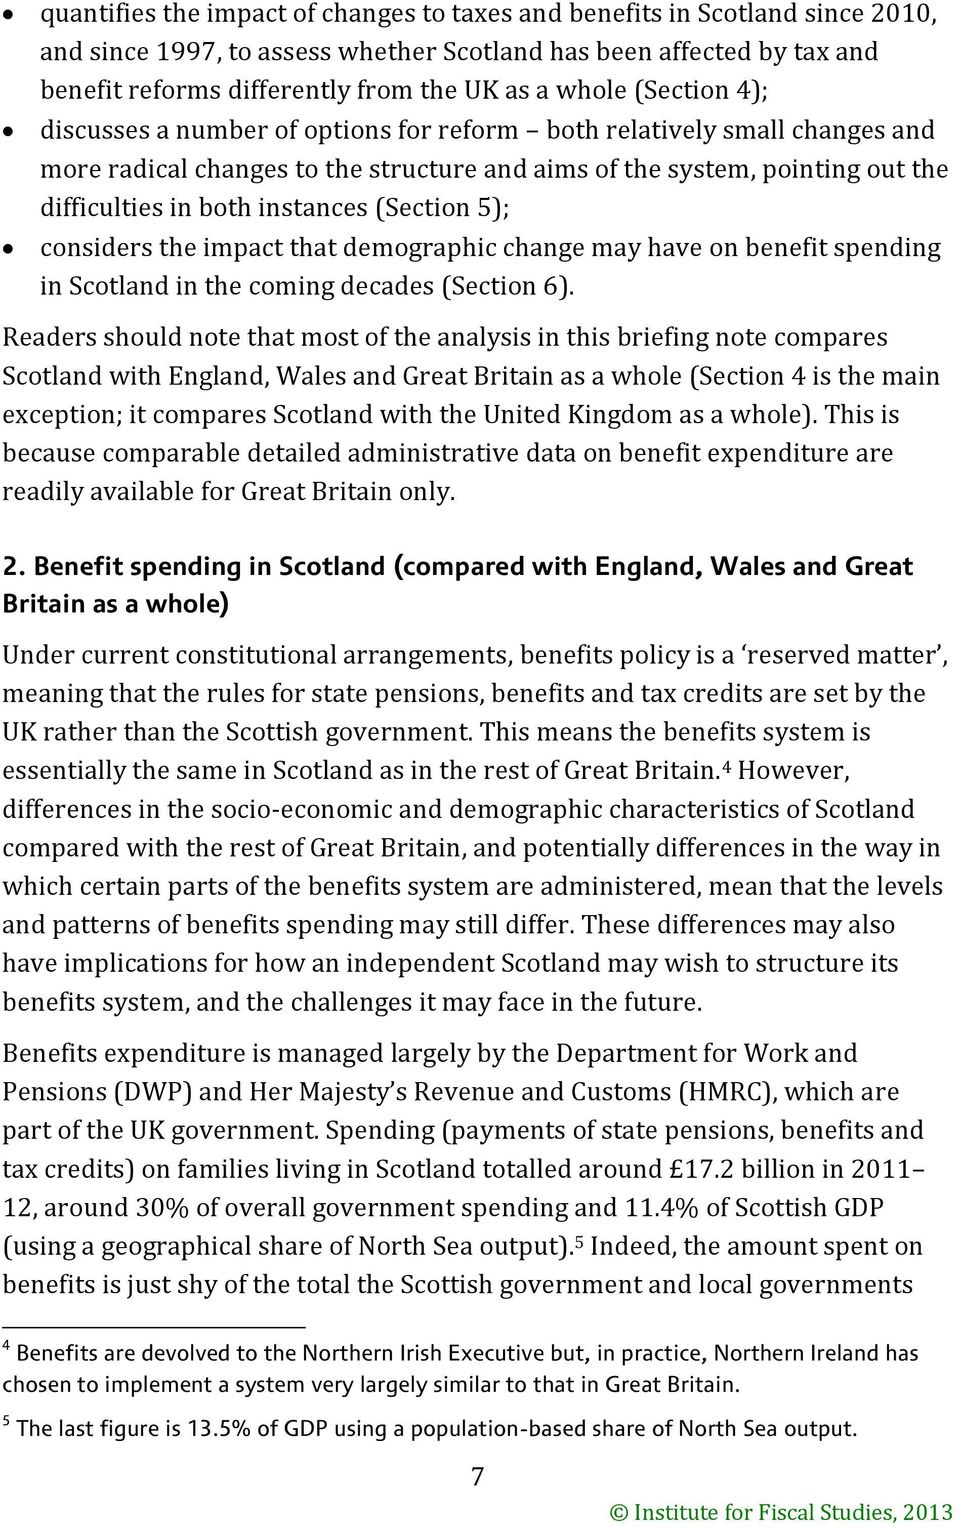 instances (Section 5); considers the impact that demographic change may have on benefit spending in Scotland in the coming decades (Section 6).